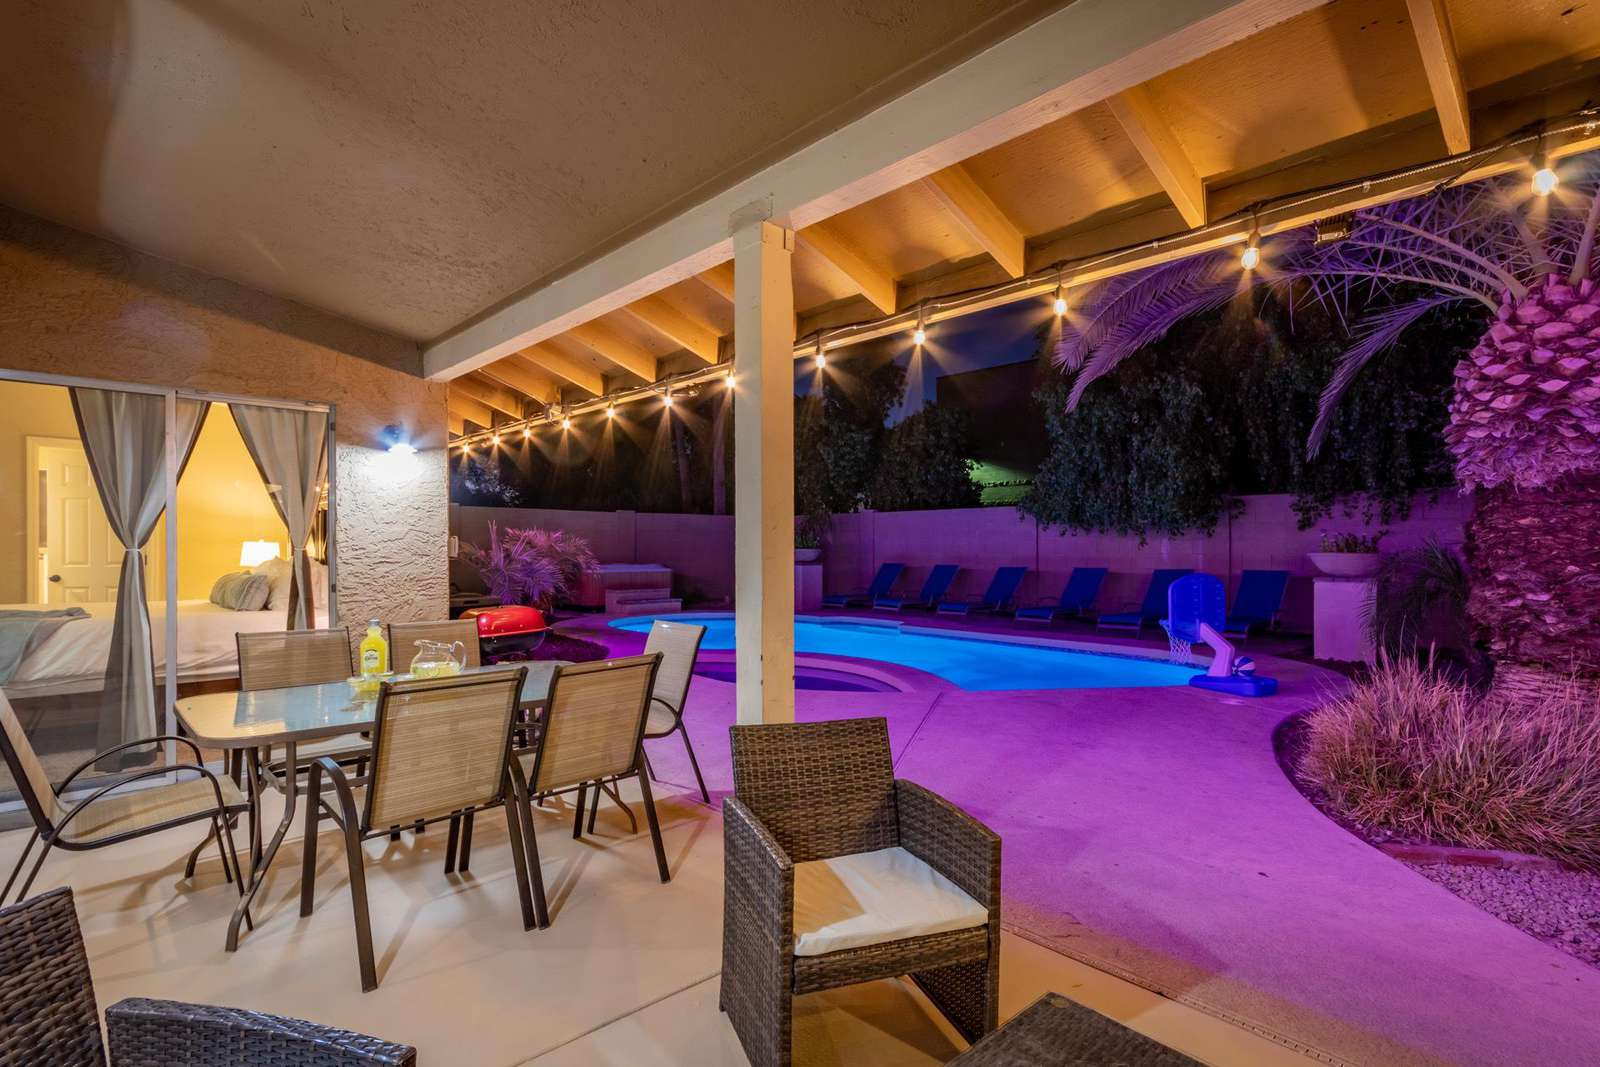 Covered Patio With Outdoor Dining Table, Seating Area and Gas Grill.